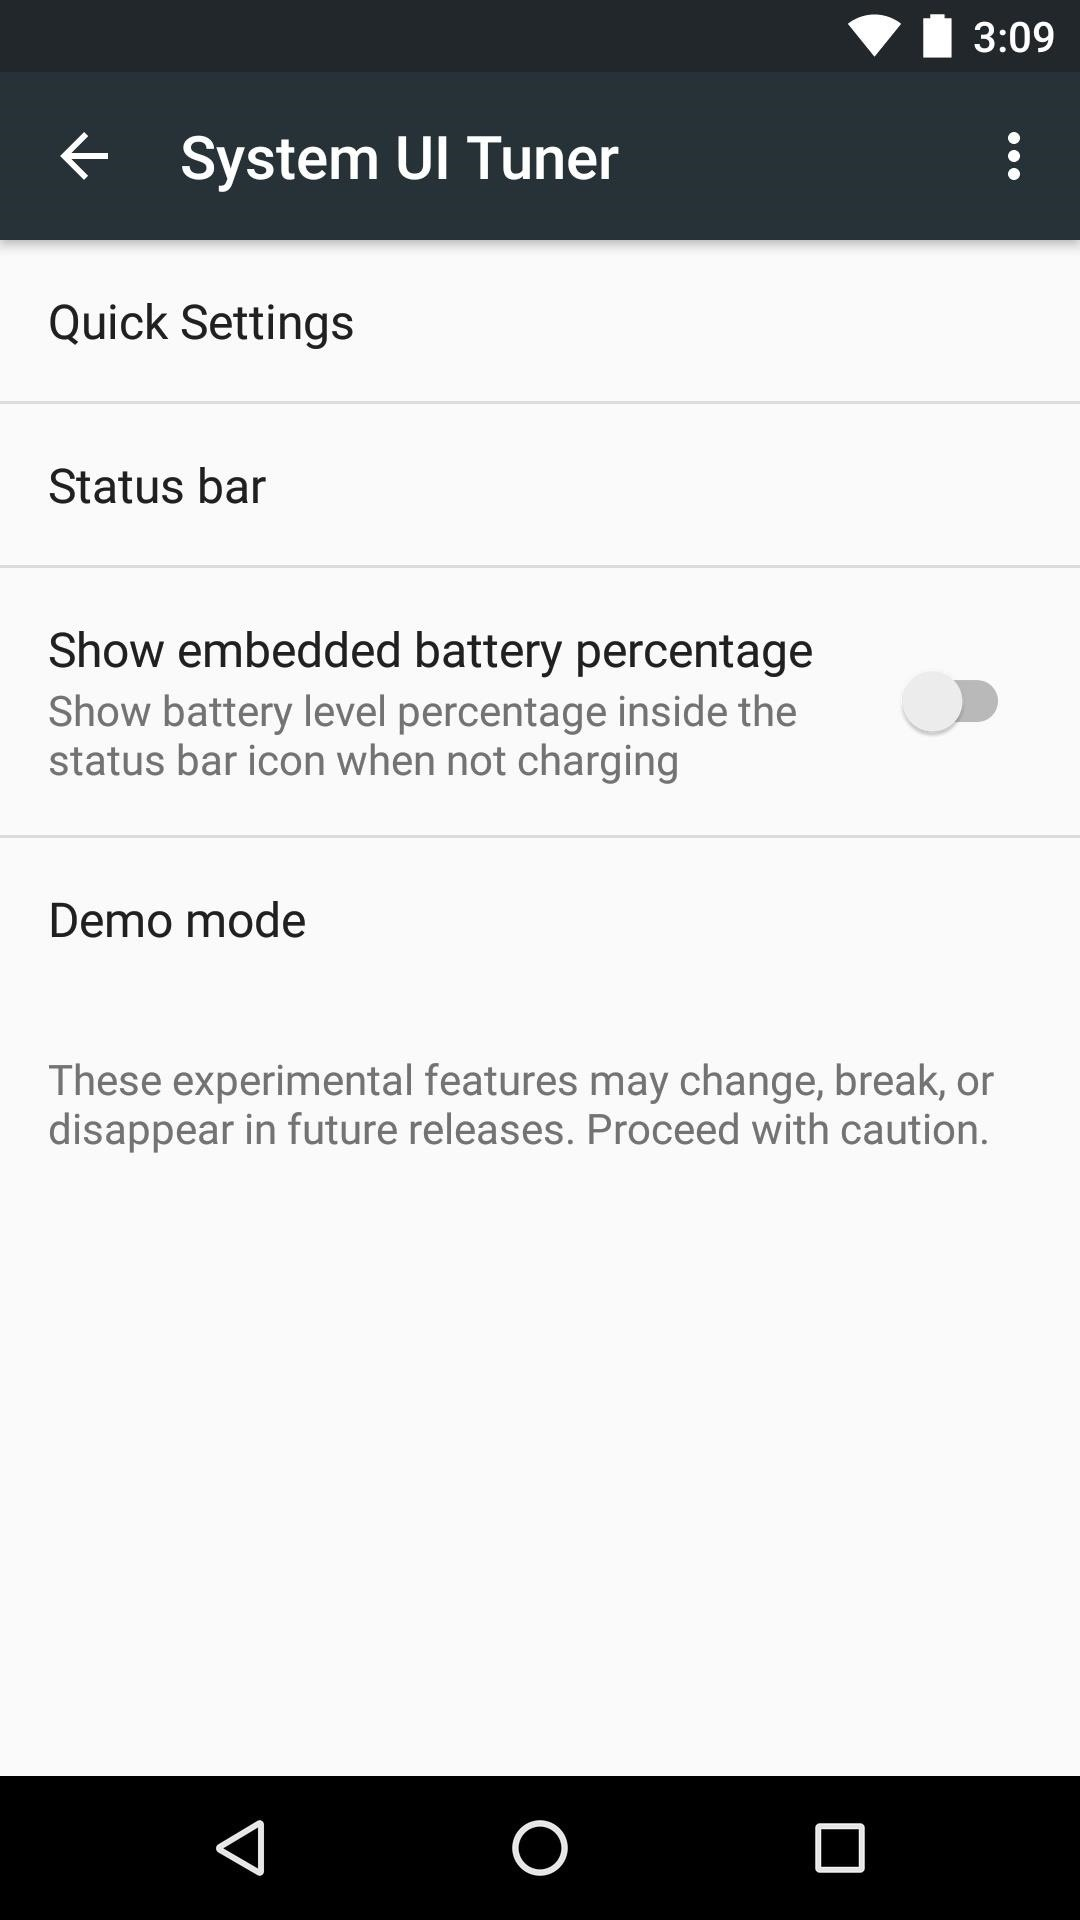 How to Enable the Hidden System UI Tuner Menu in Android Marshmallow